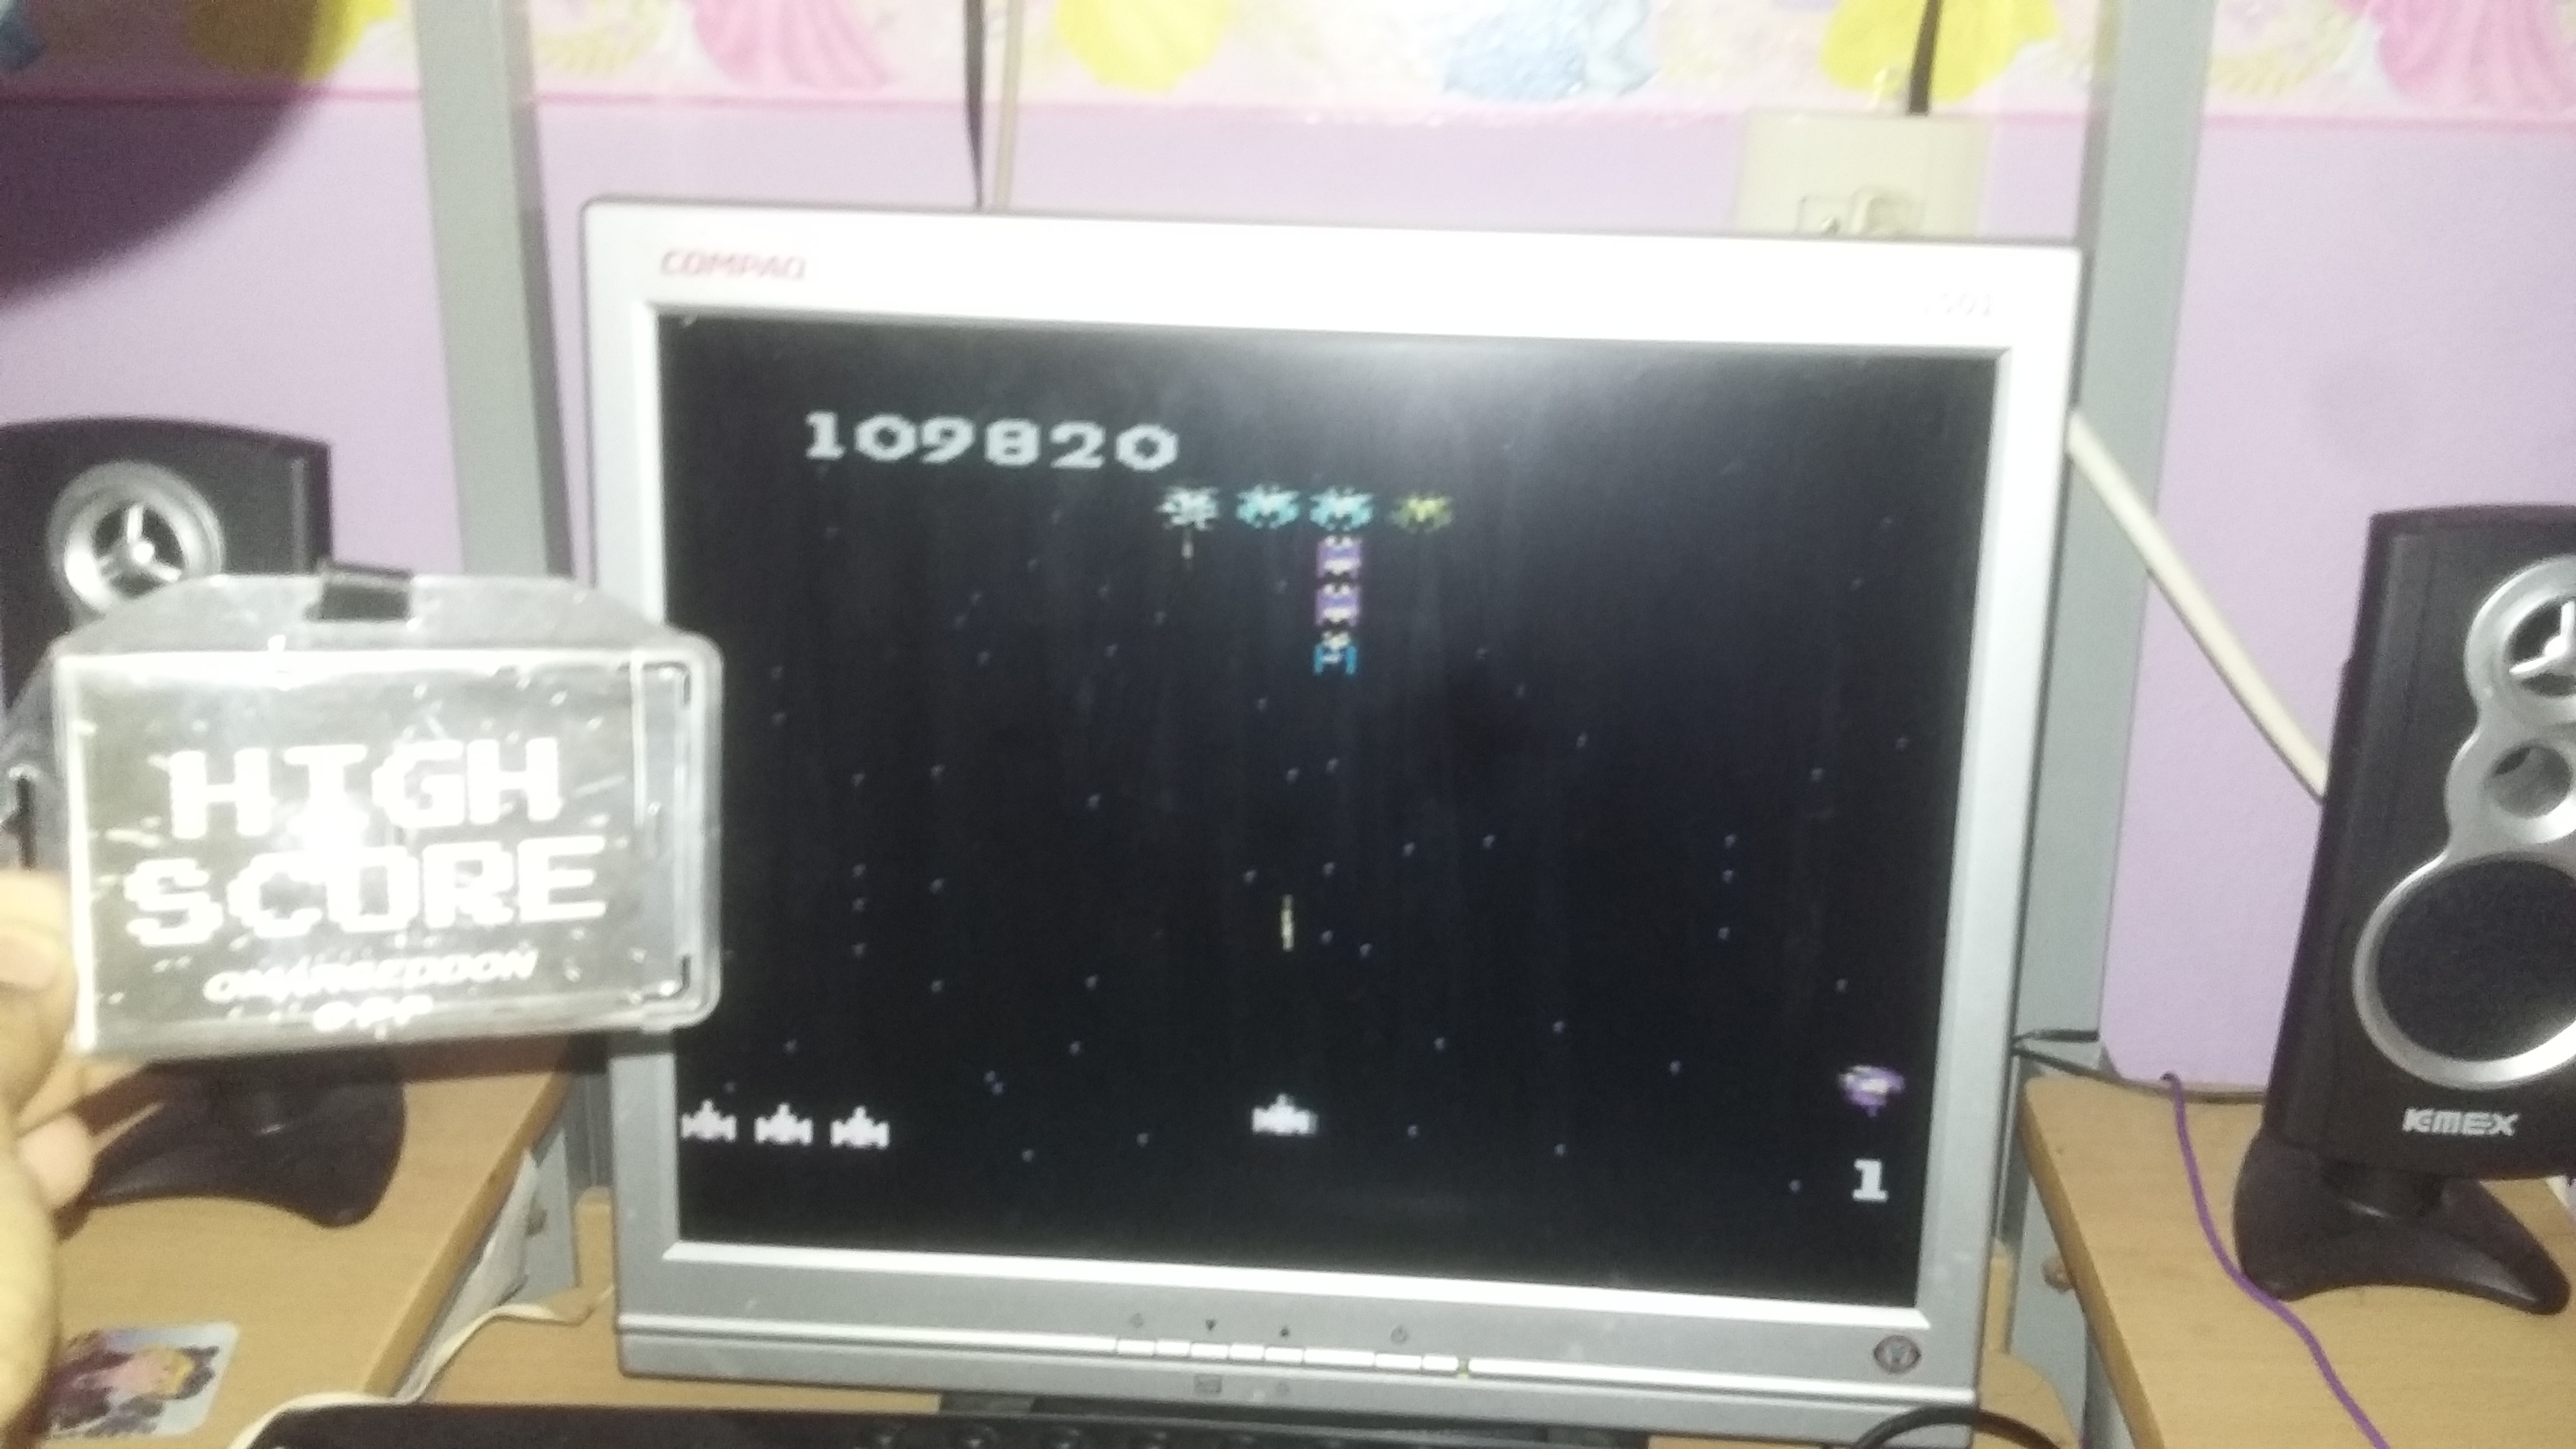 omargeddon: Galaga: Advanced (Atari 7800 Emulated) 109,820 points on 2017-05-24 23:18:30